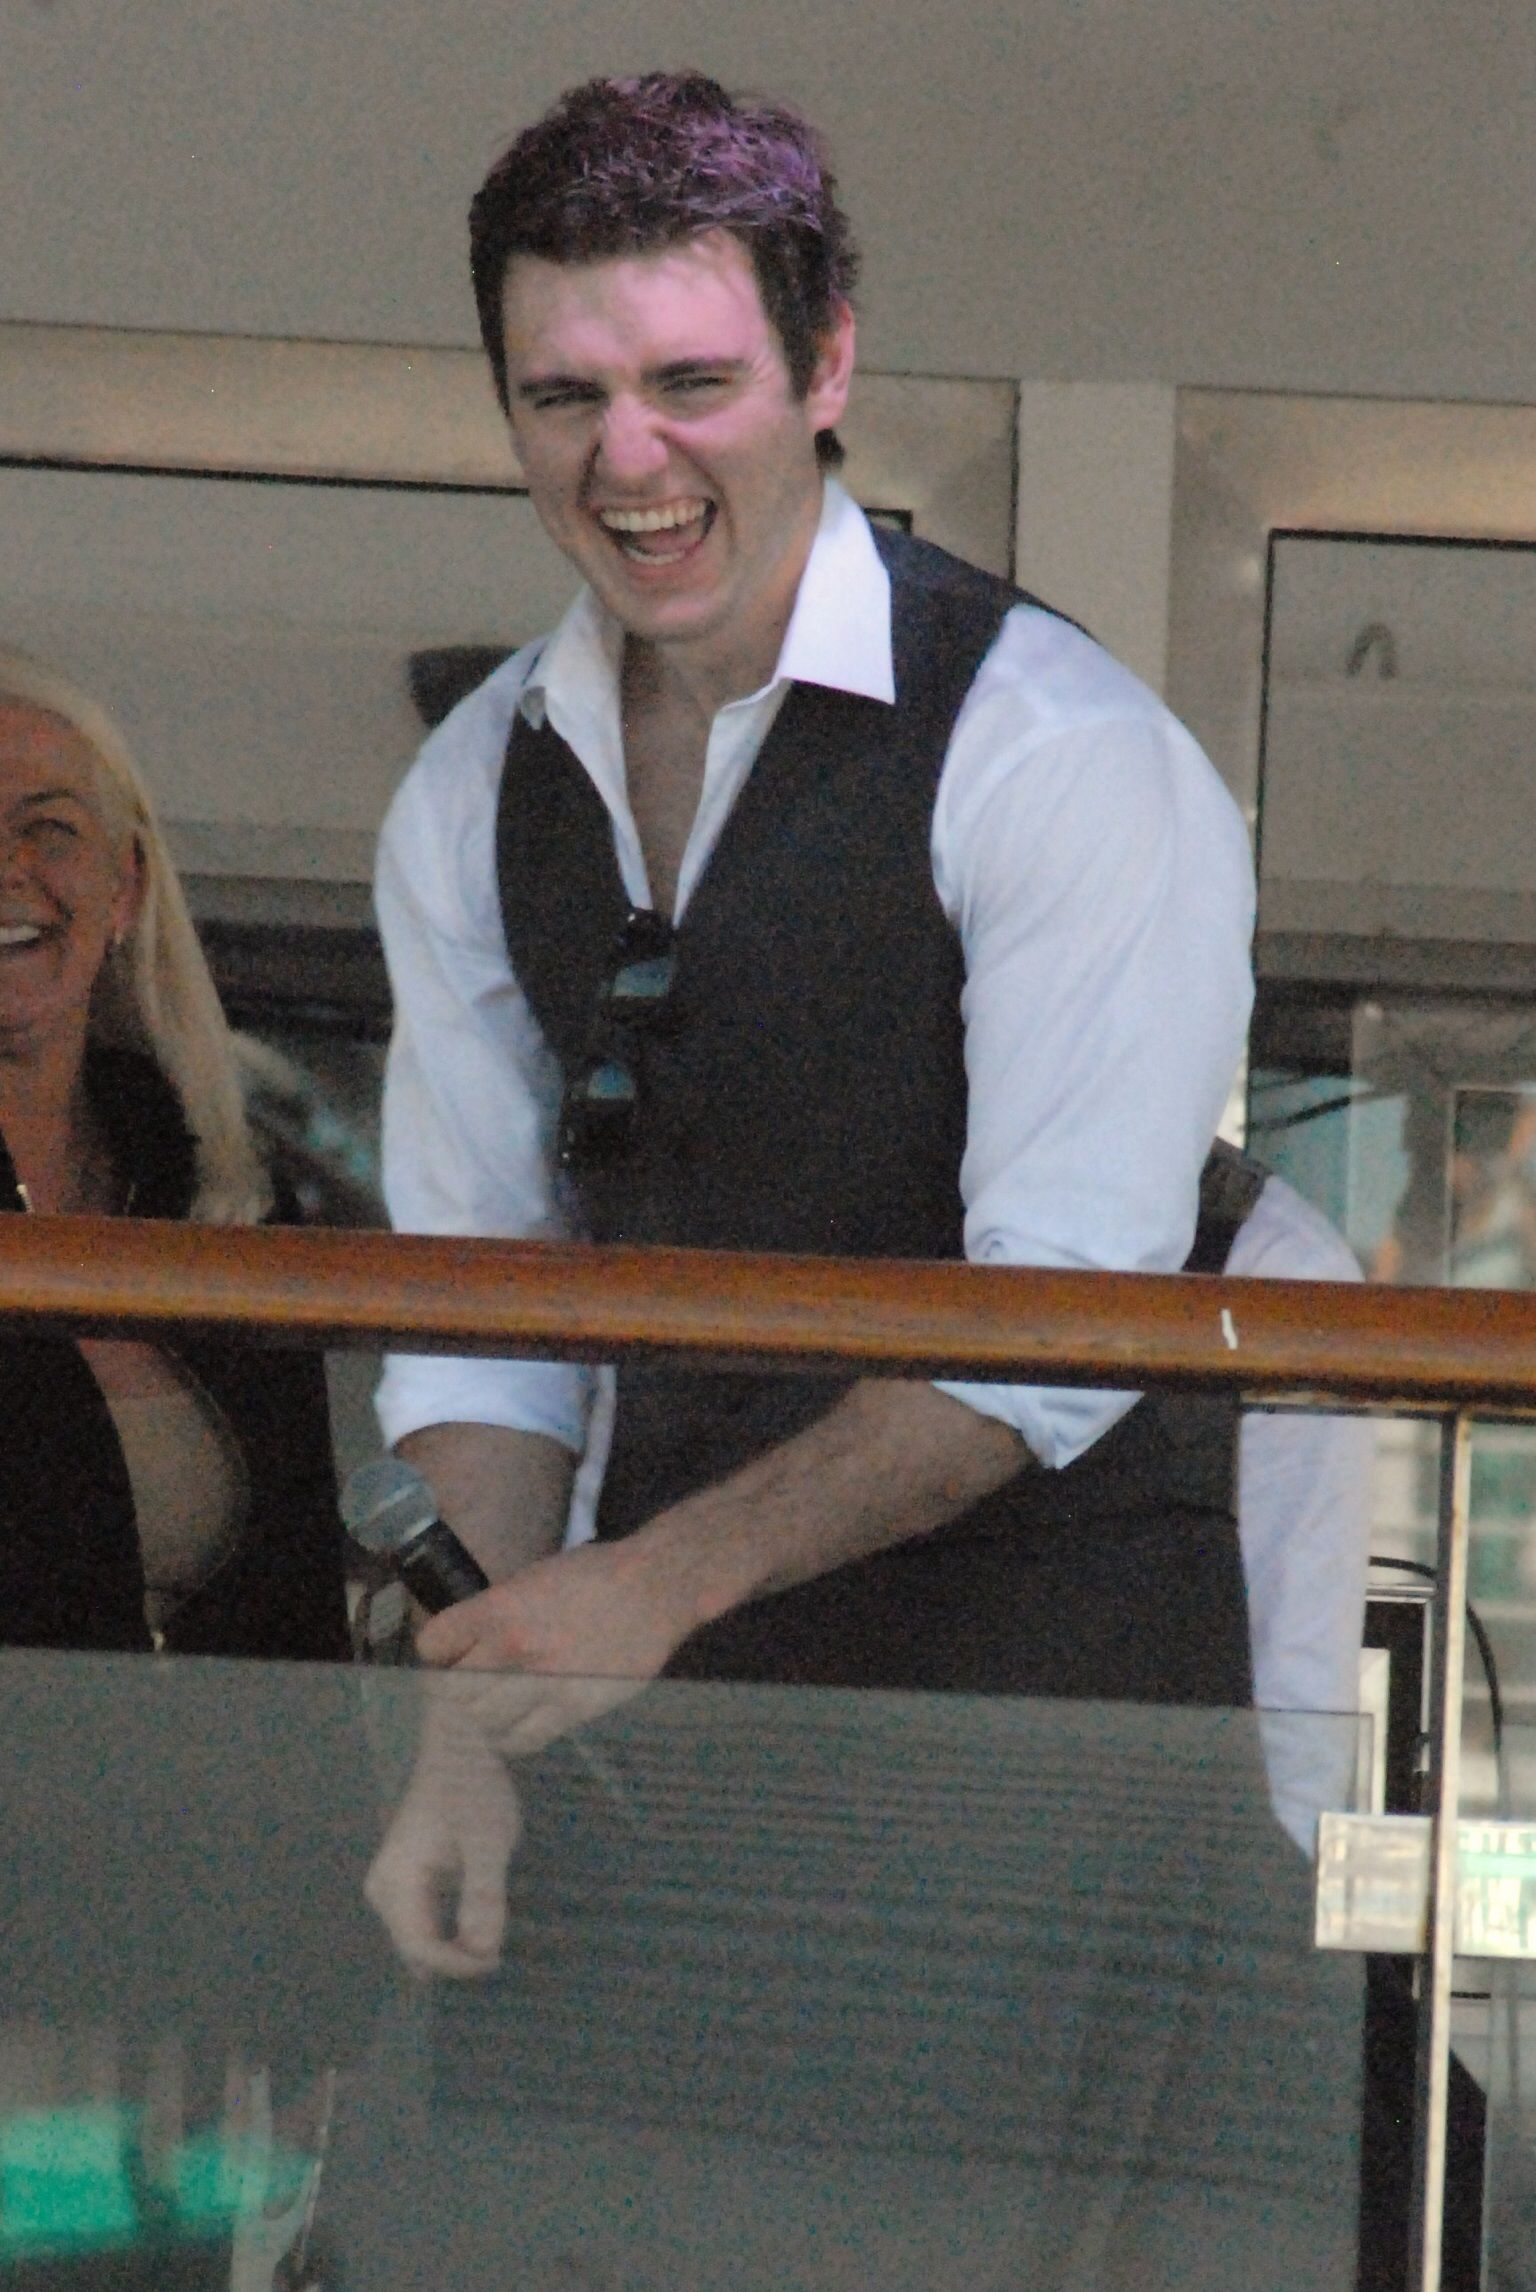 Celtic Thunder Cruise 2013. Mr. Emmet Cahill. Taken by me at the Sail away party